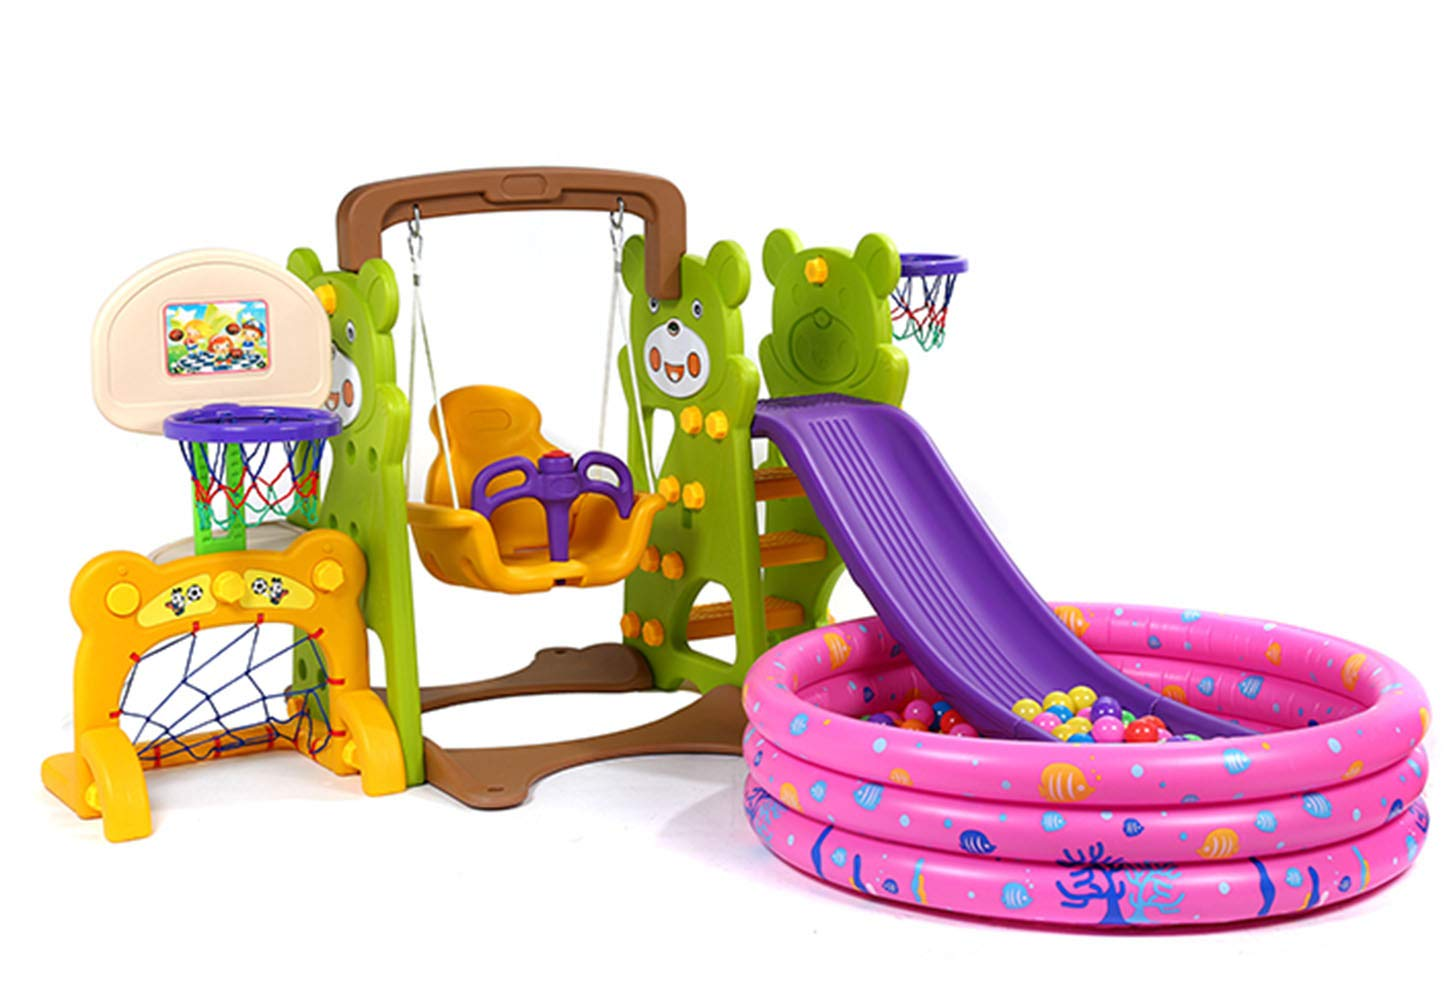 5-in-1 Toddler Climber and Swing Set with Ball Pool and air Pump Basketball Hoop Playset for Both Indoors Backyard,Green by Thole (Image #1)